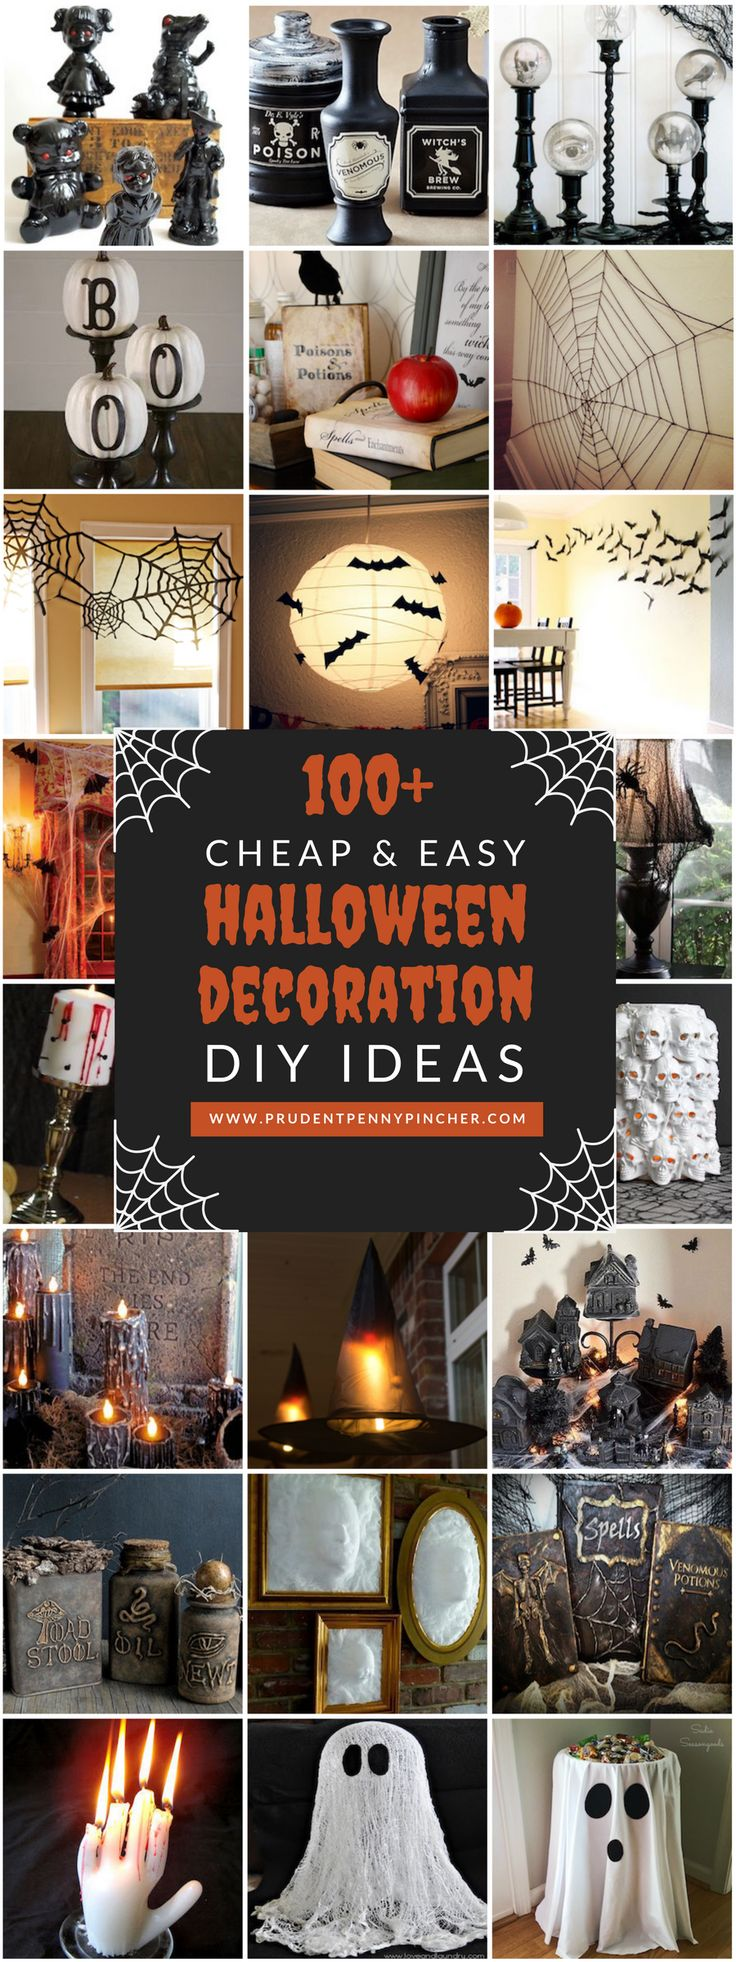 176 best halloween decor DIY images on Pinterest Halloween - halloween decorations diy